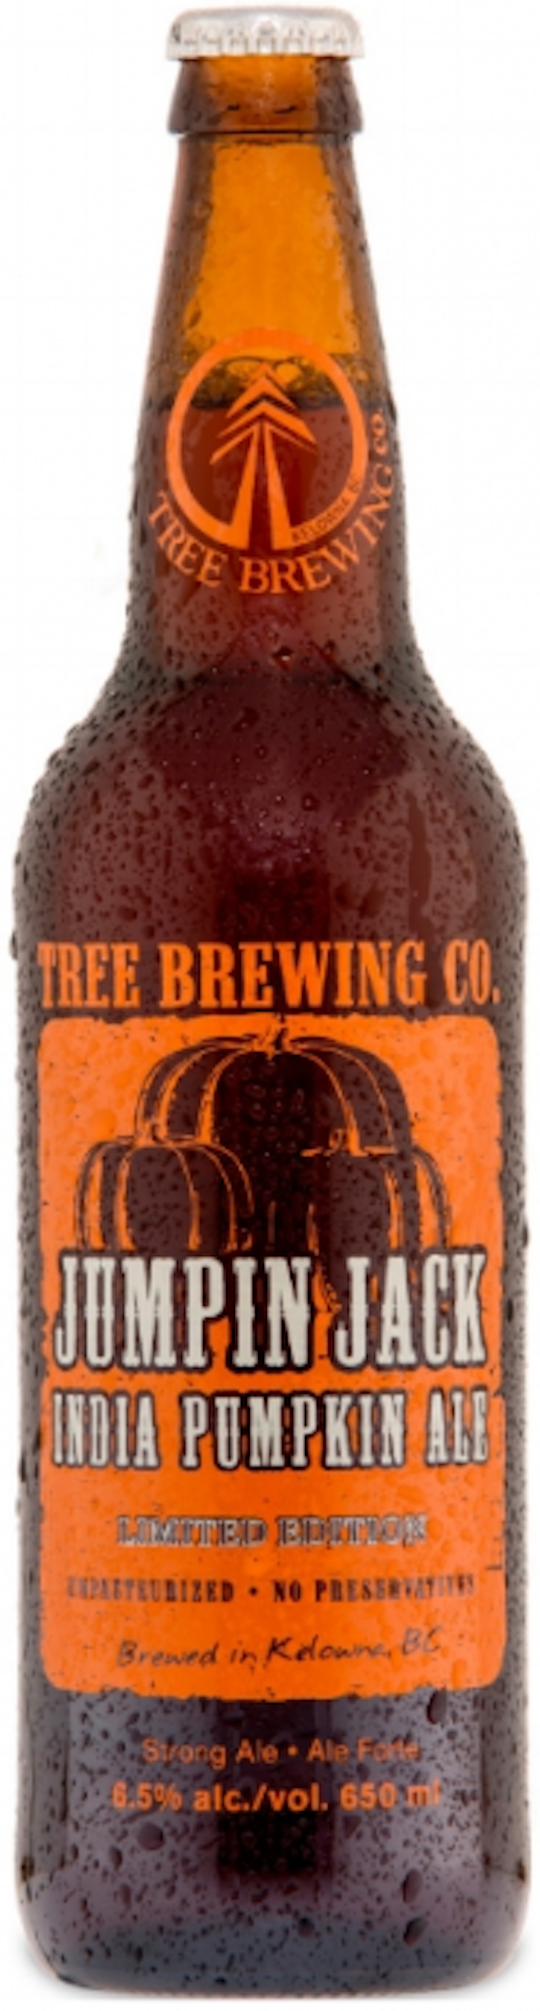 tree-brewing-company-jumpin-jack-ipa_1513621702